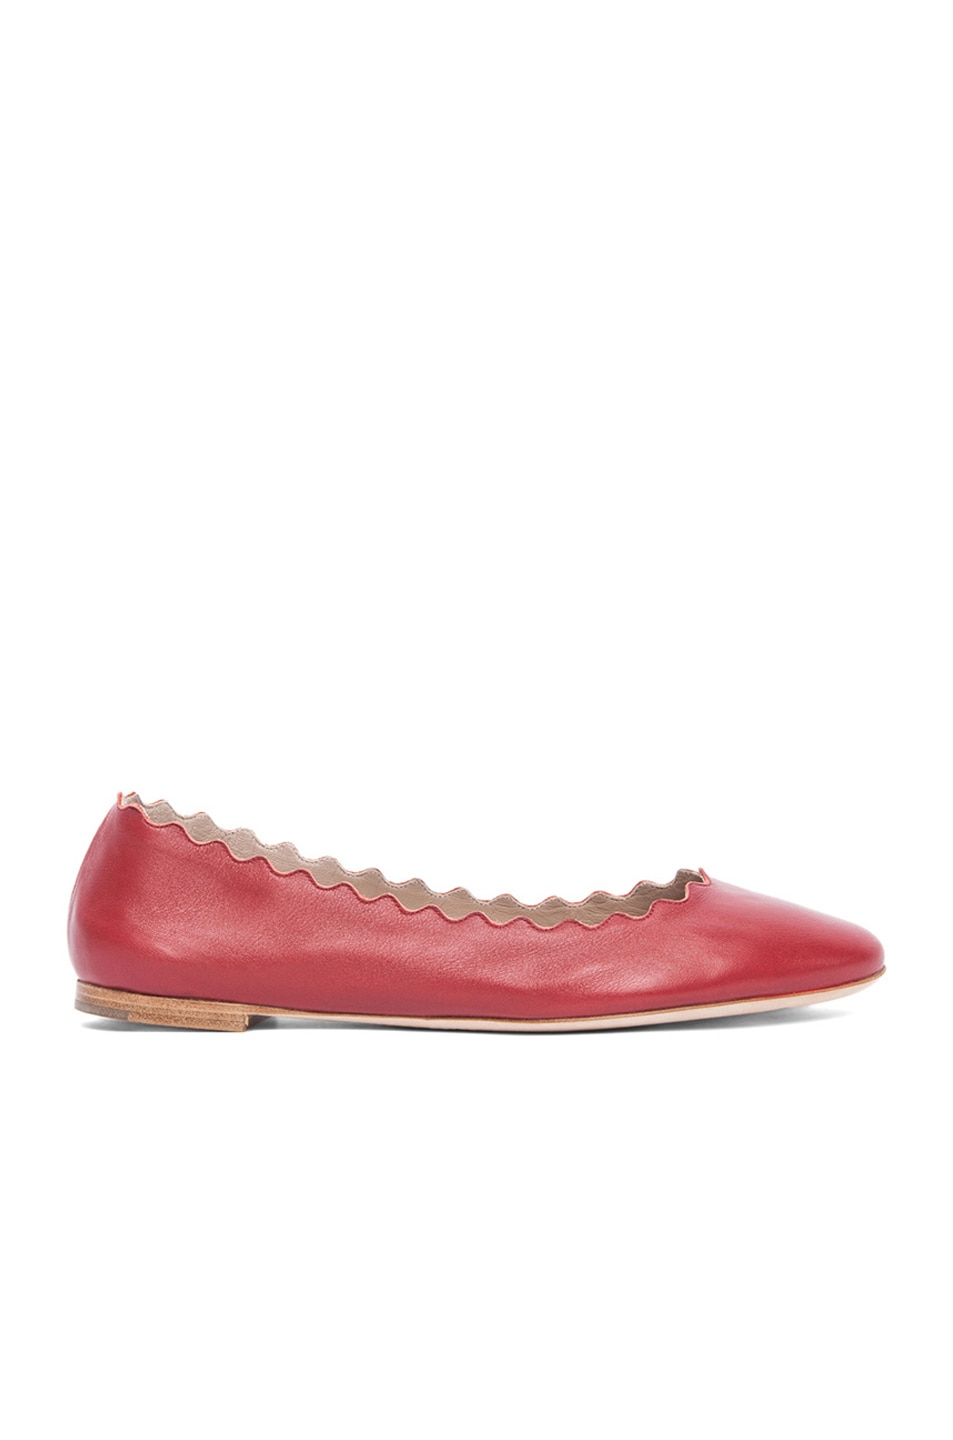 Image 1 of Chloe Leather Scalloped Flats in Royal Red